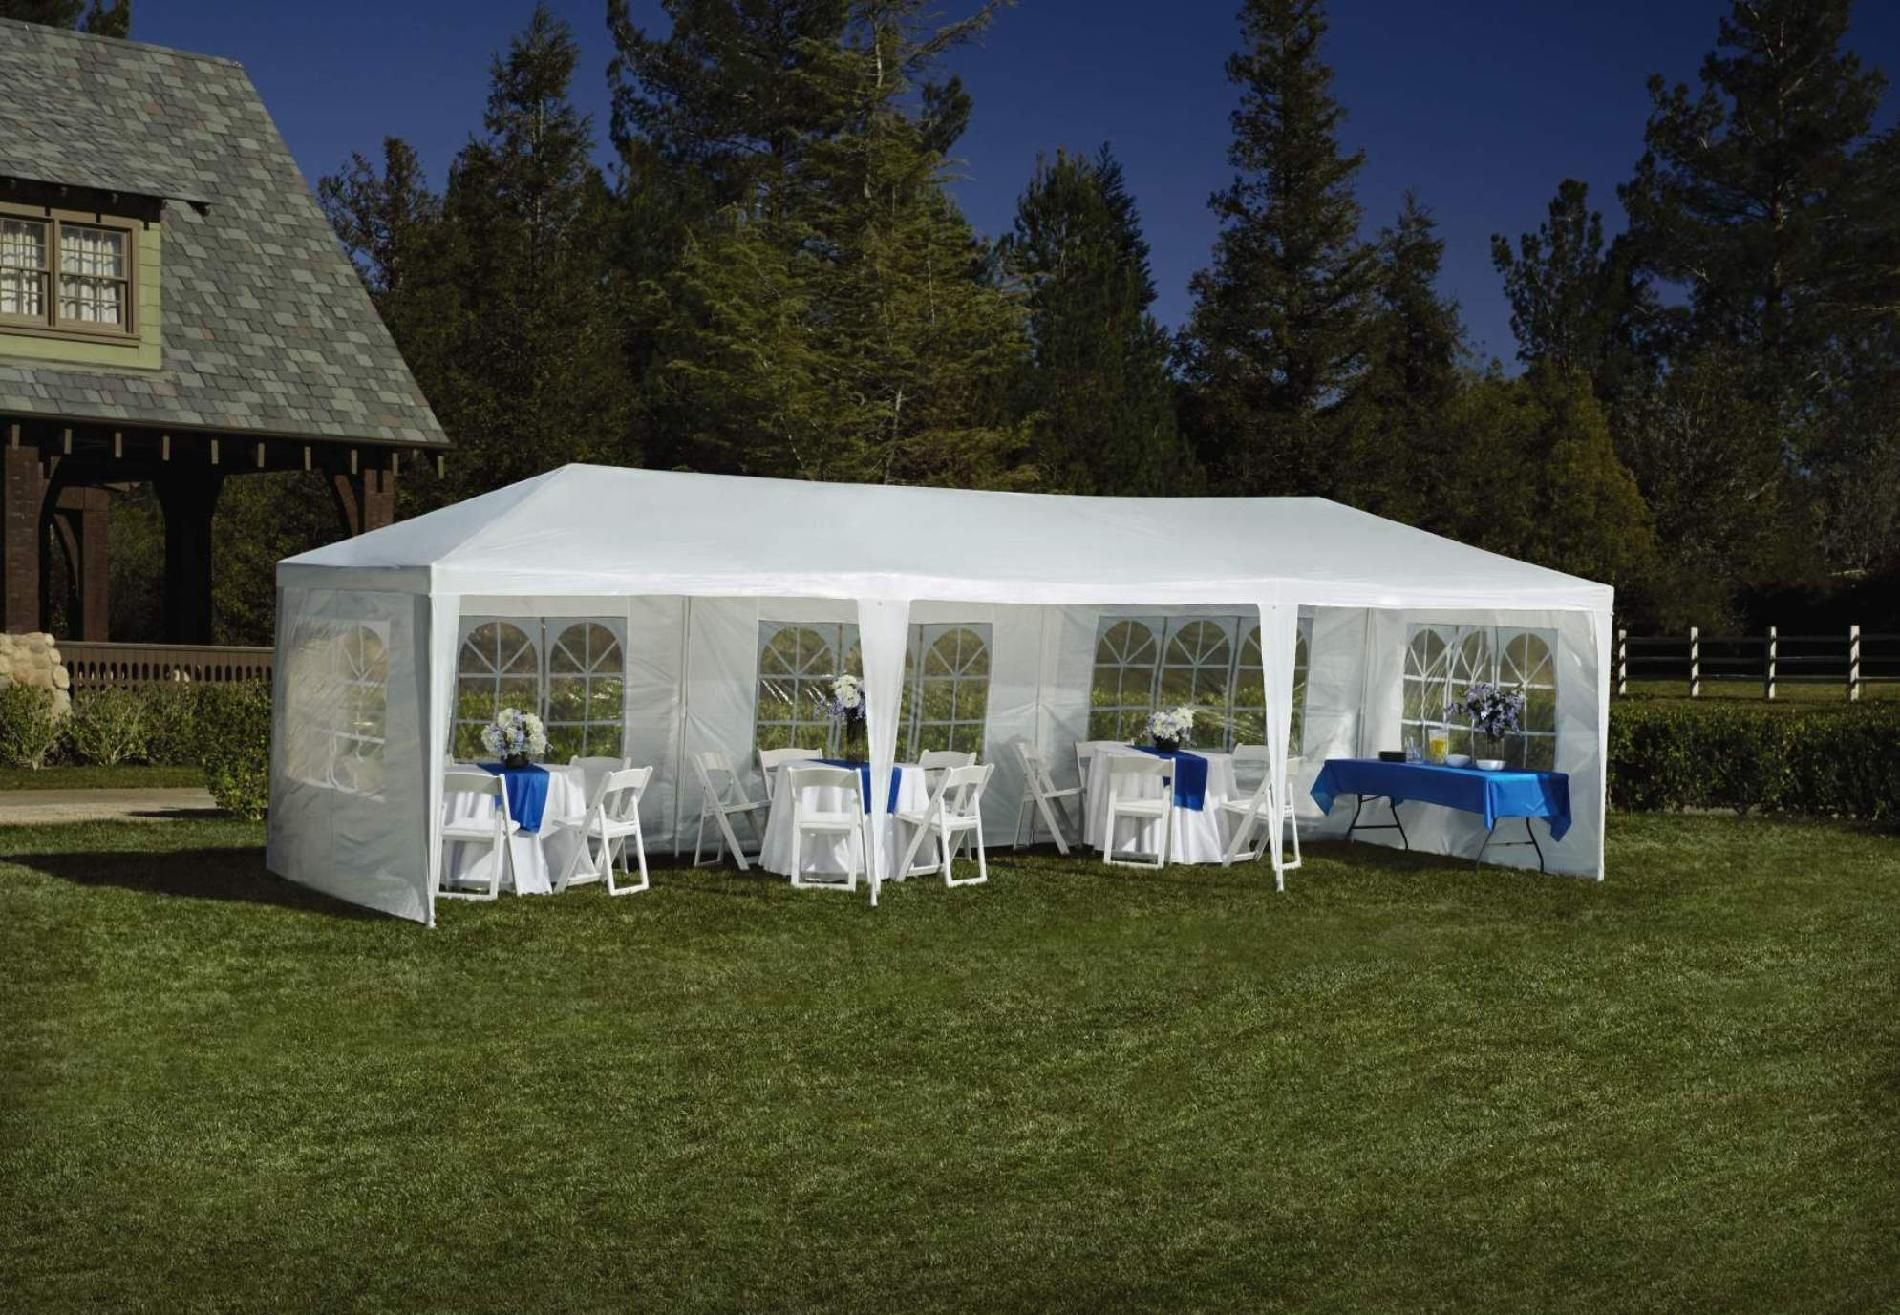 Shop Kmart Local Ad At Coeur D Alene Id And Find Deals From Your Weeklyad And More Gazebo Gazebo Canopy Event Tent